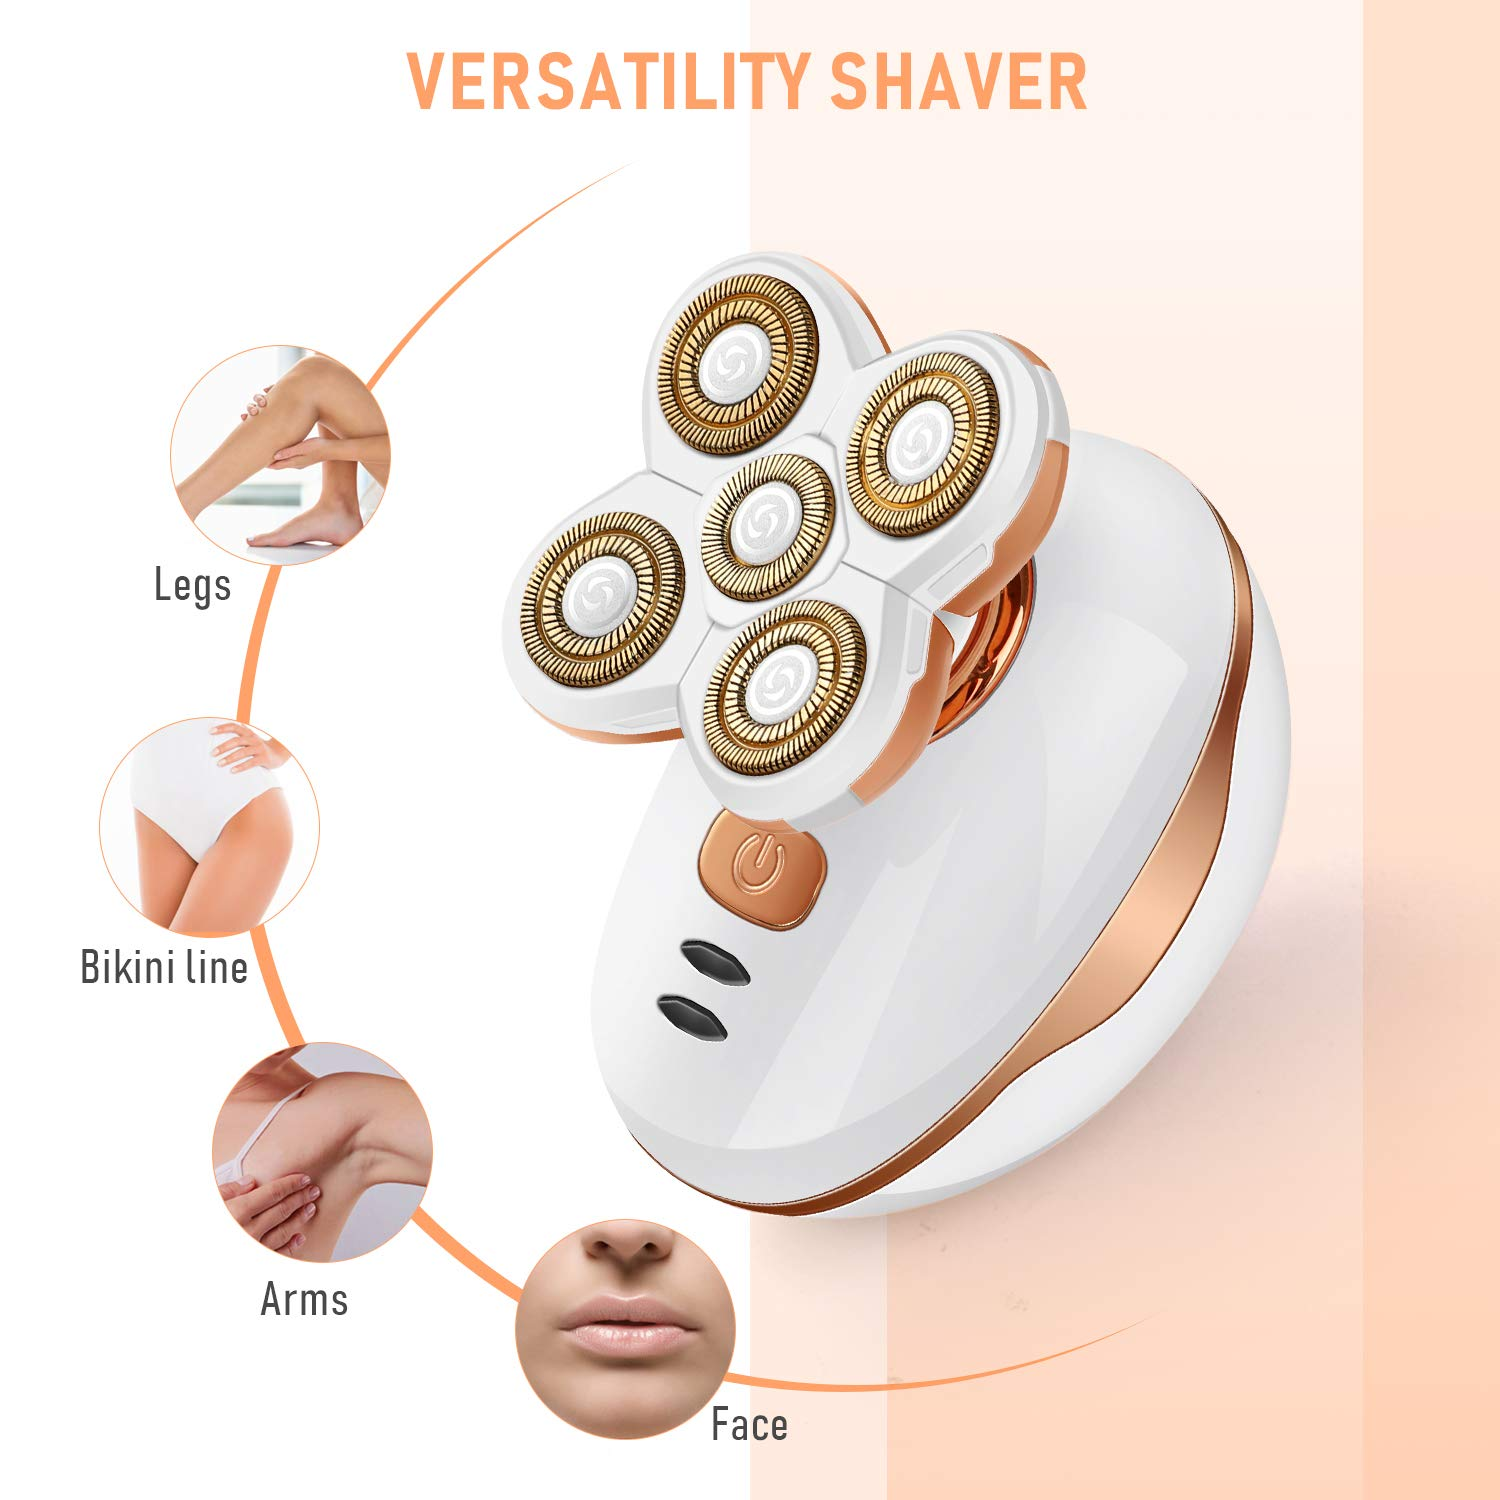 Women's Hair Remover – Liberex Electric Shaver Rechargeable Trimmer Hair Removal Razor